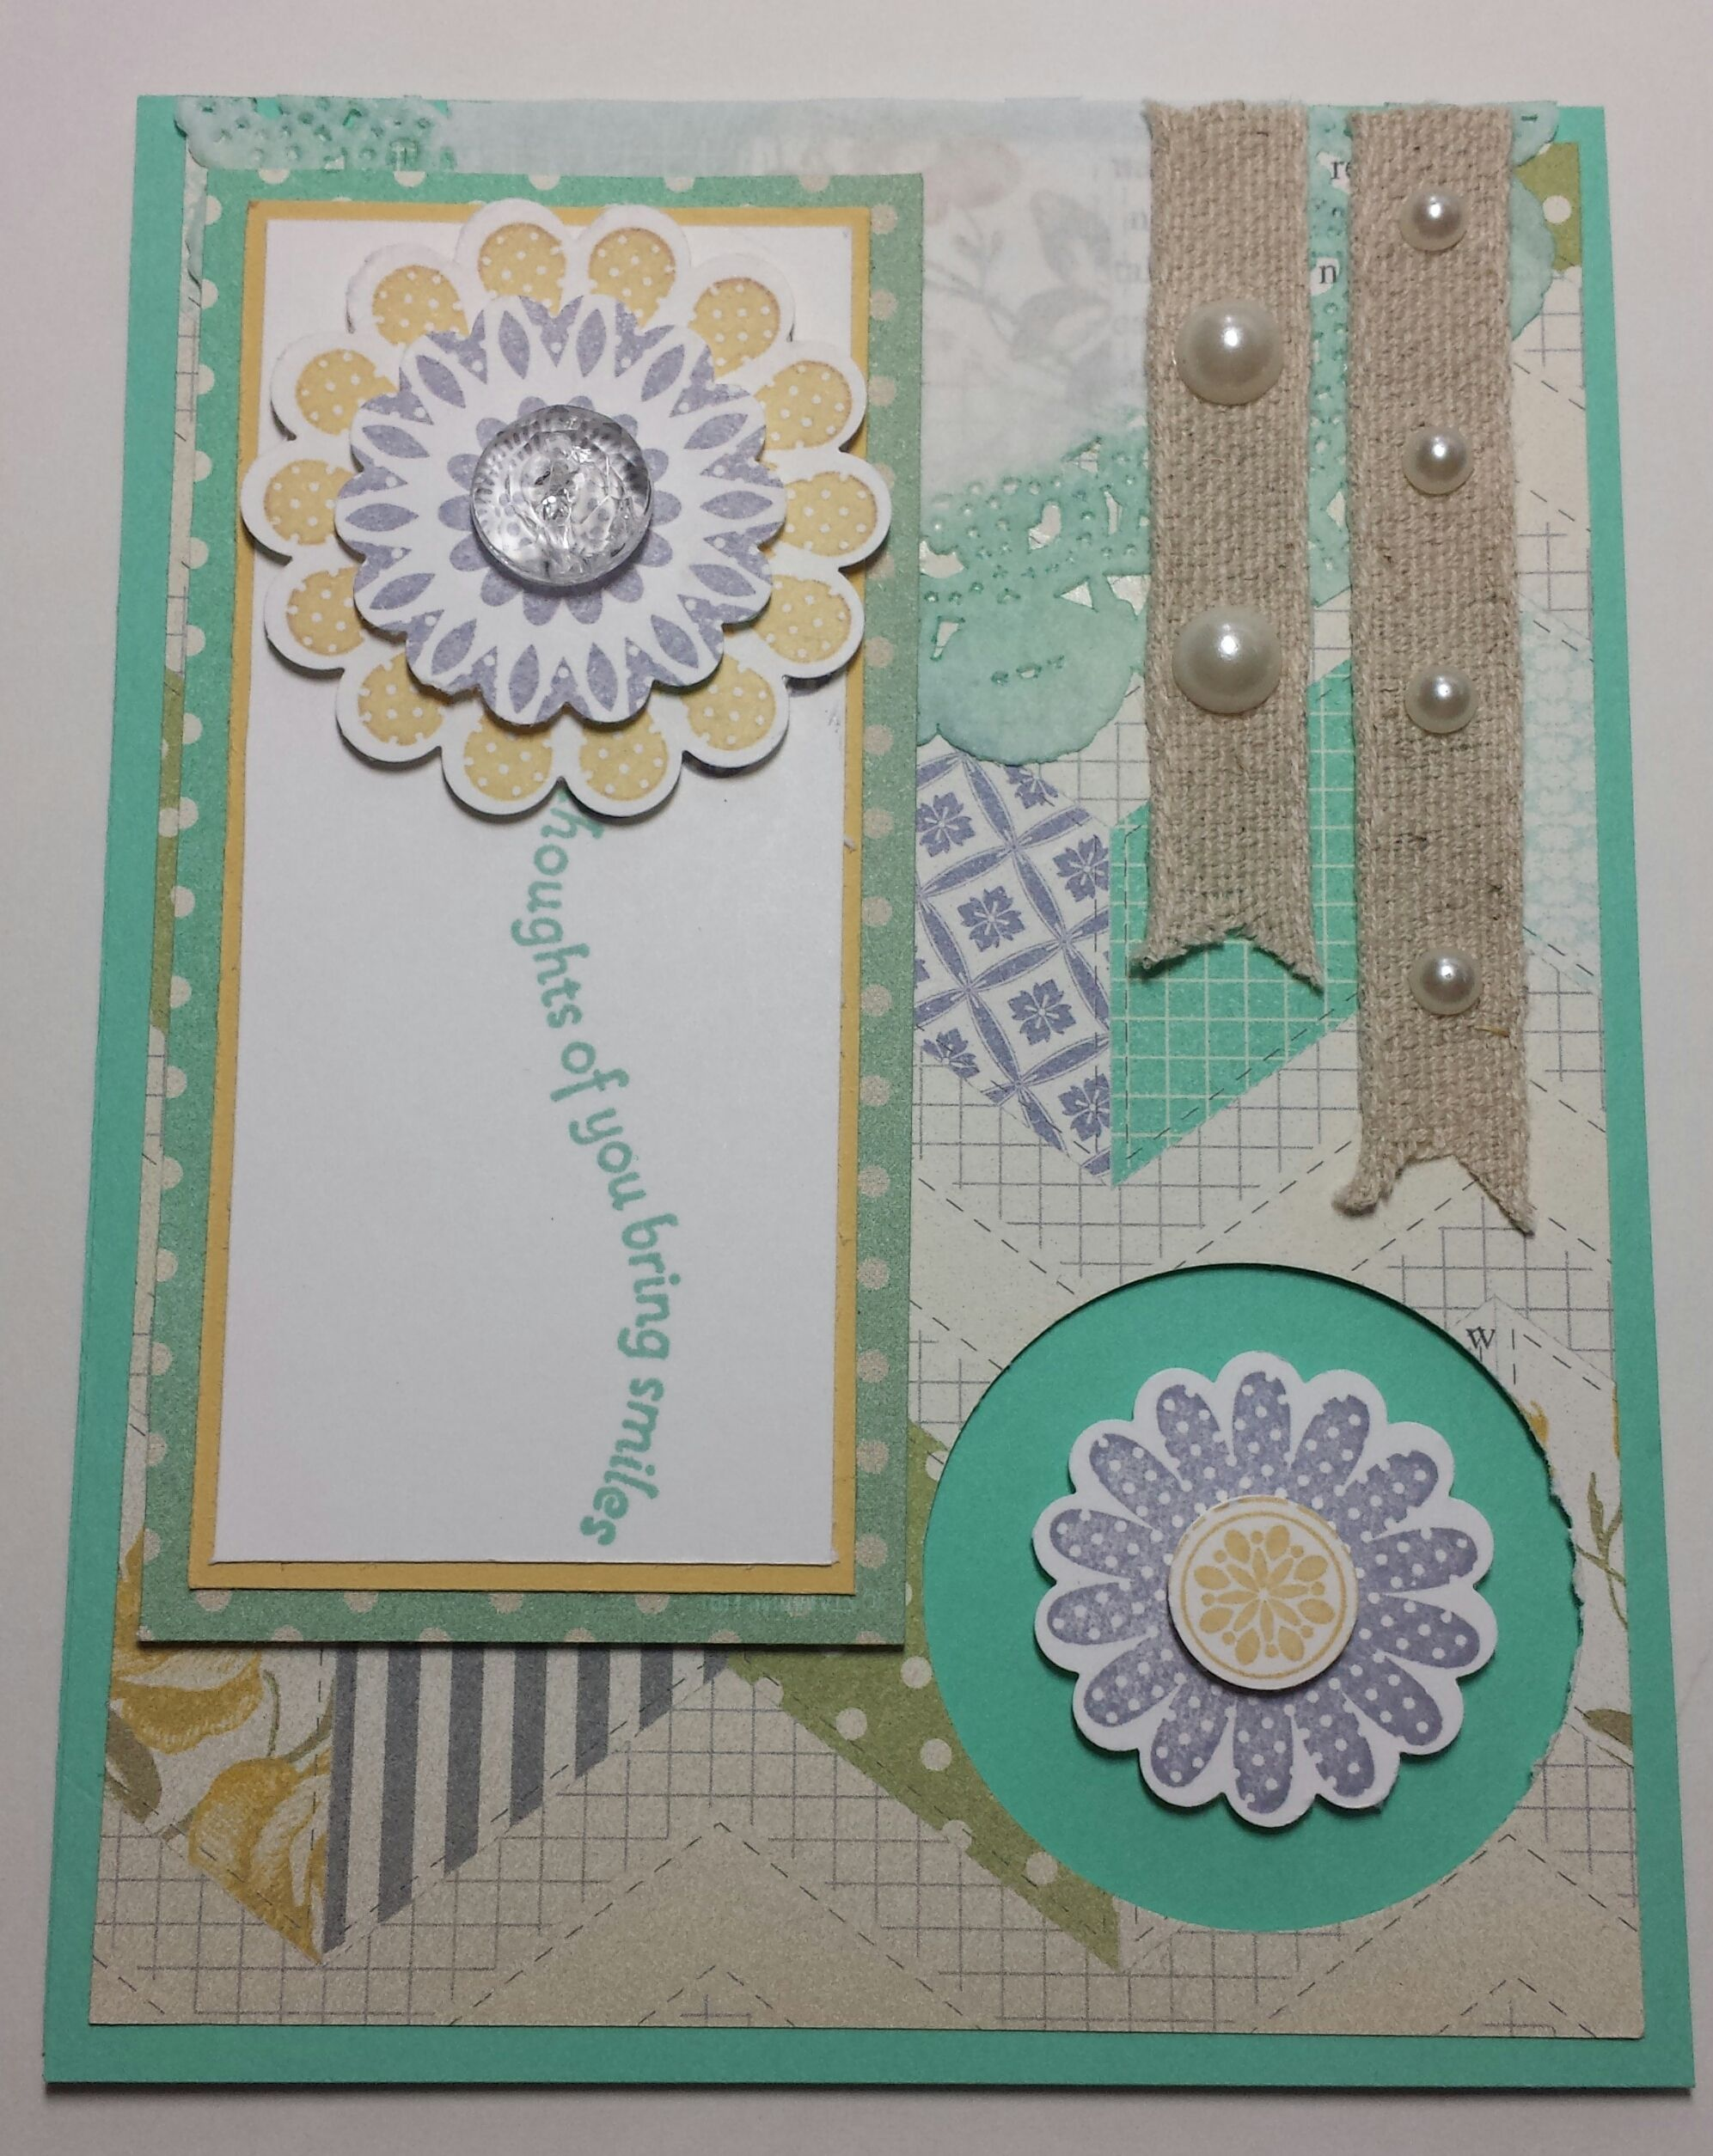 Card using the Polka Dot Pieces stamp set by Stampin' Up!